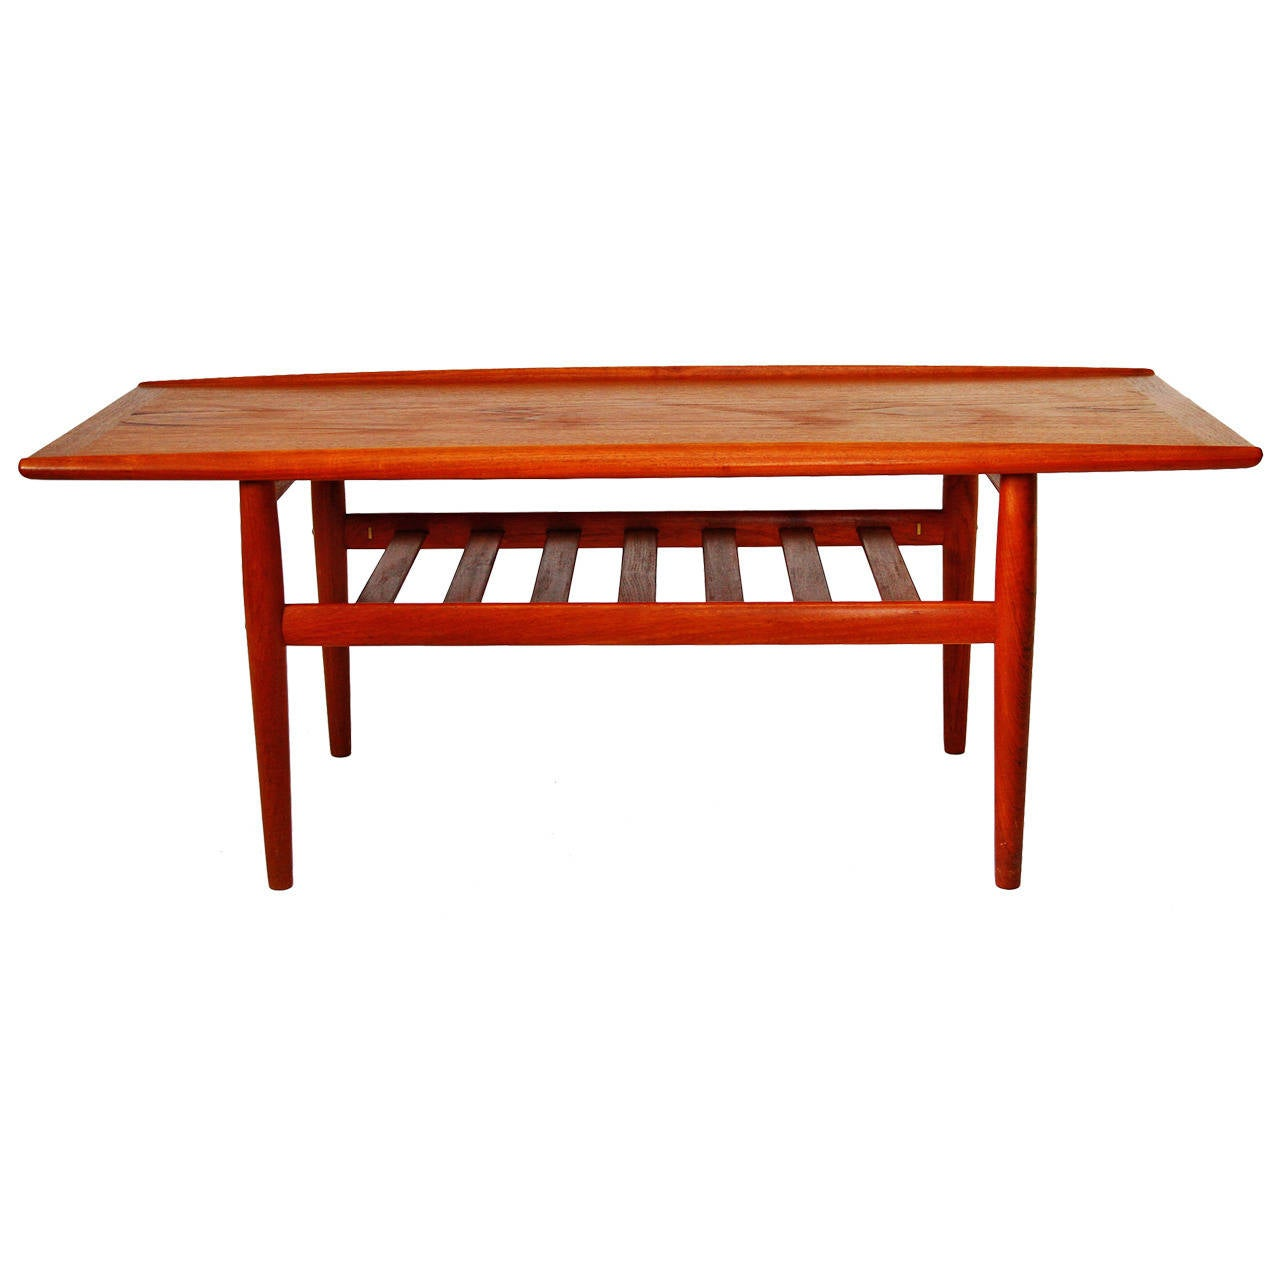 danish teak coffee table by grete jalk 1960s for sale at 1stdibs. Black Bedroom Furniture Sets. Home Design Ideas